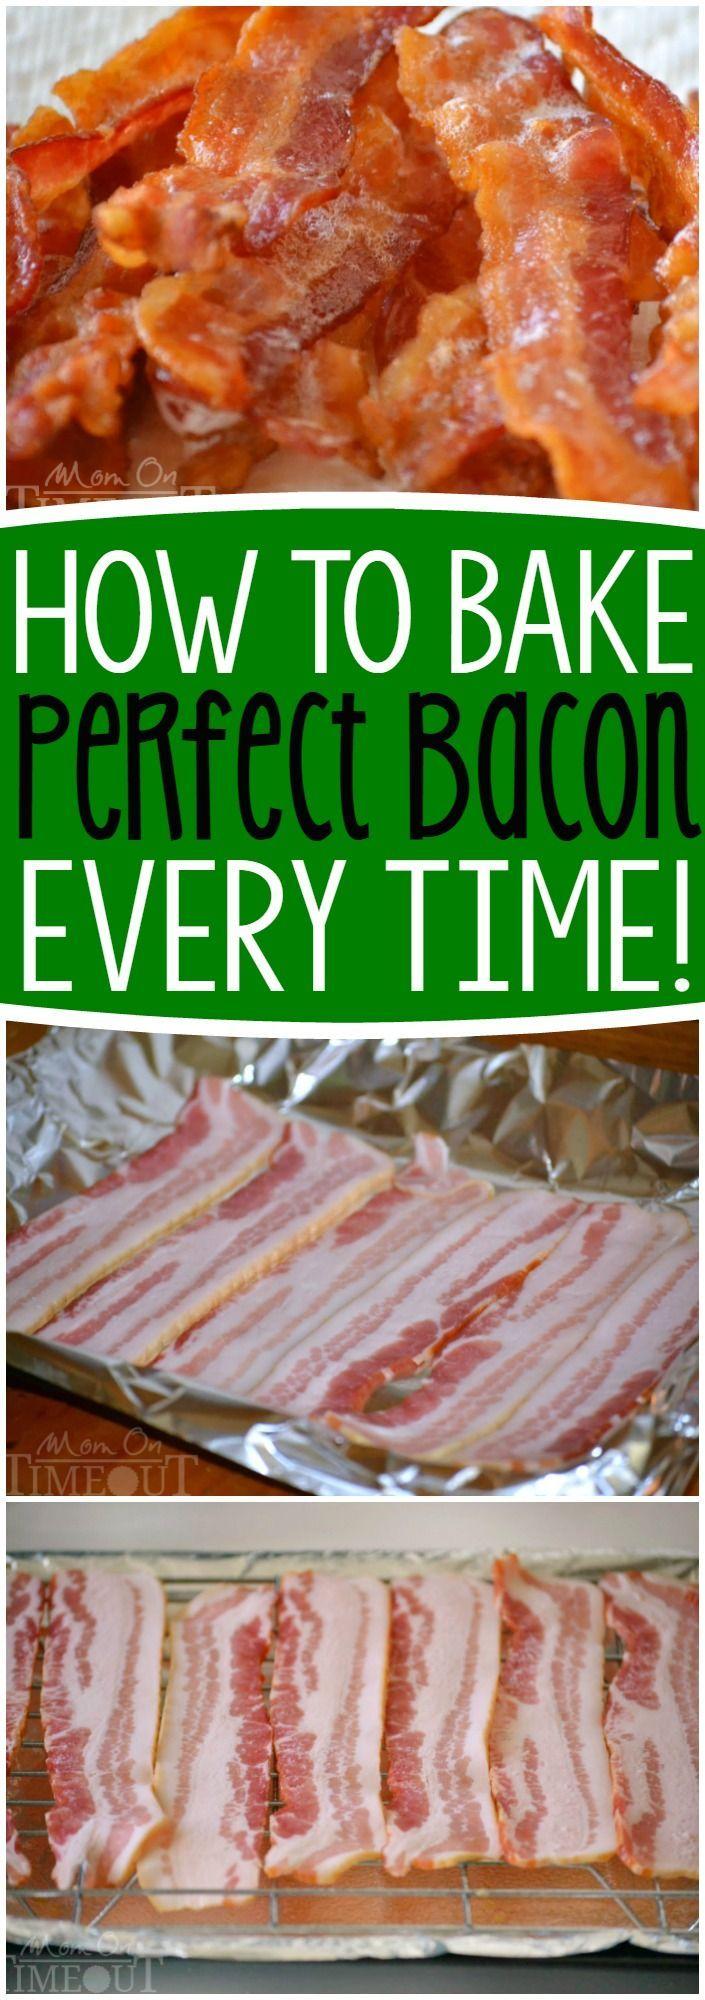 Find This Pin And More On Bacon Recipes